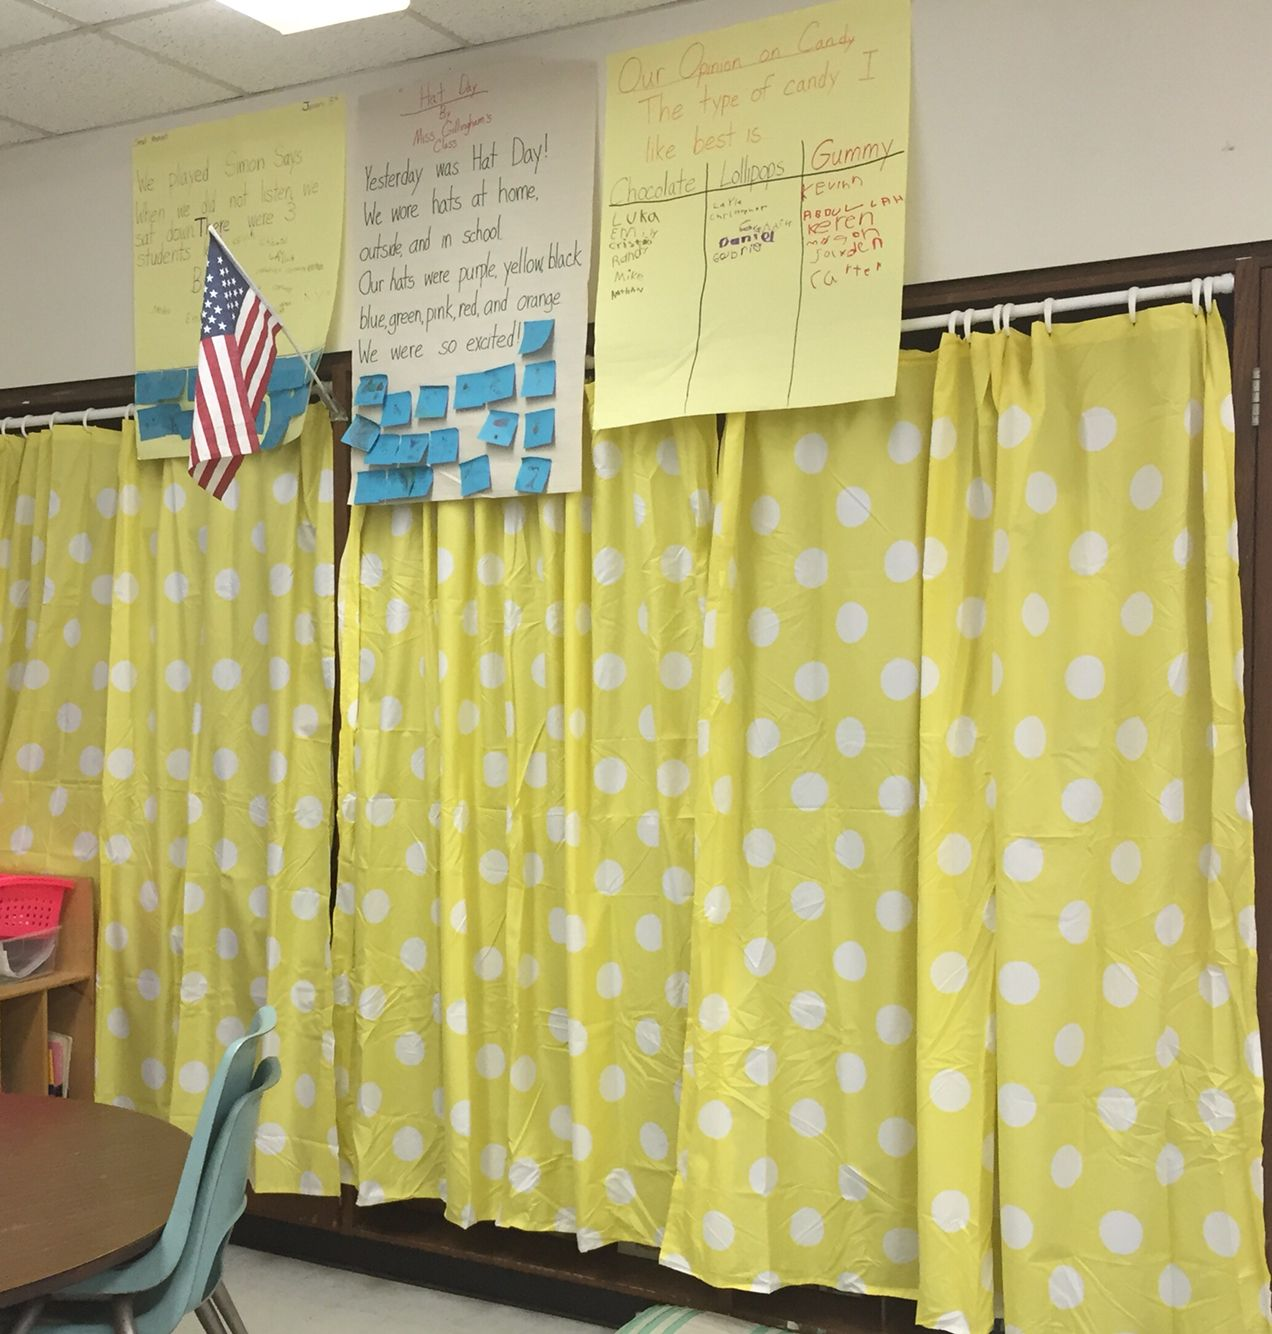 Use Tension Rods And Shower Curtains To Hide Visual Noise From